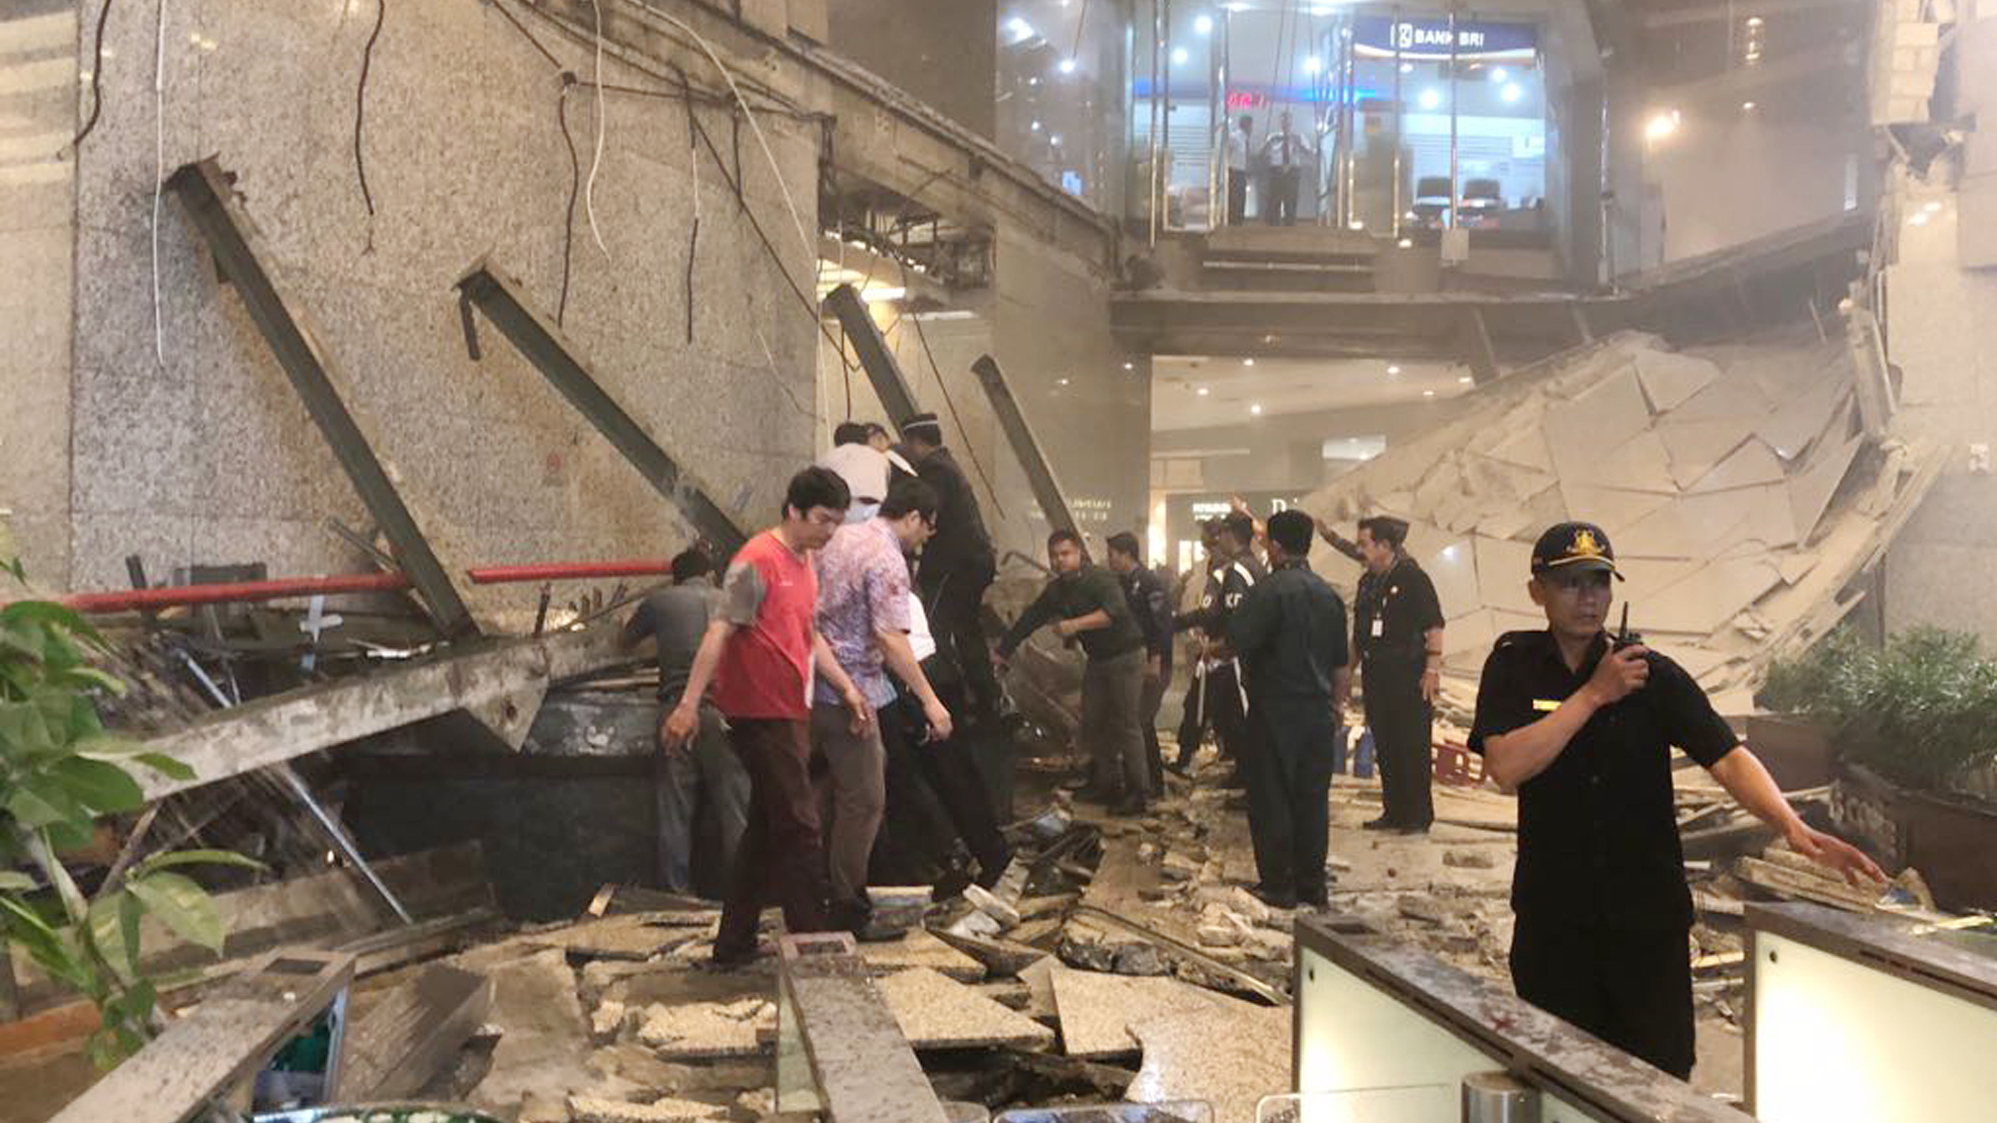 Structure inside Jakarta stock exchange tower collapses